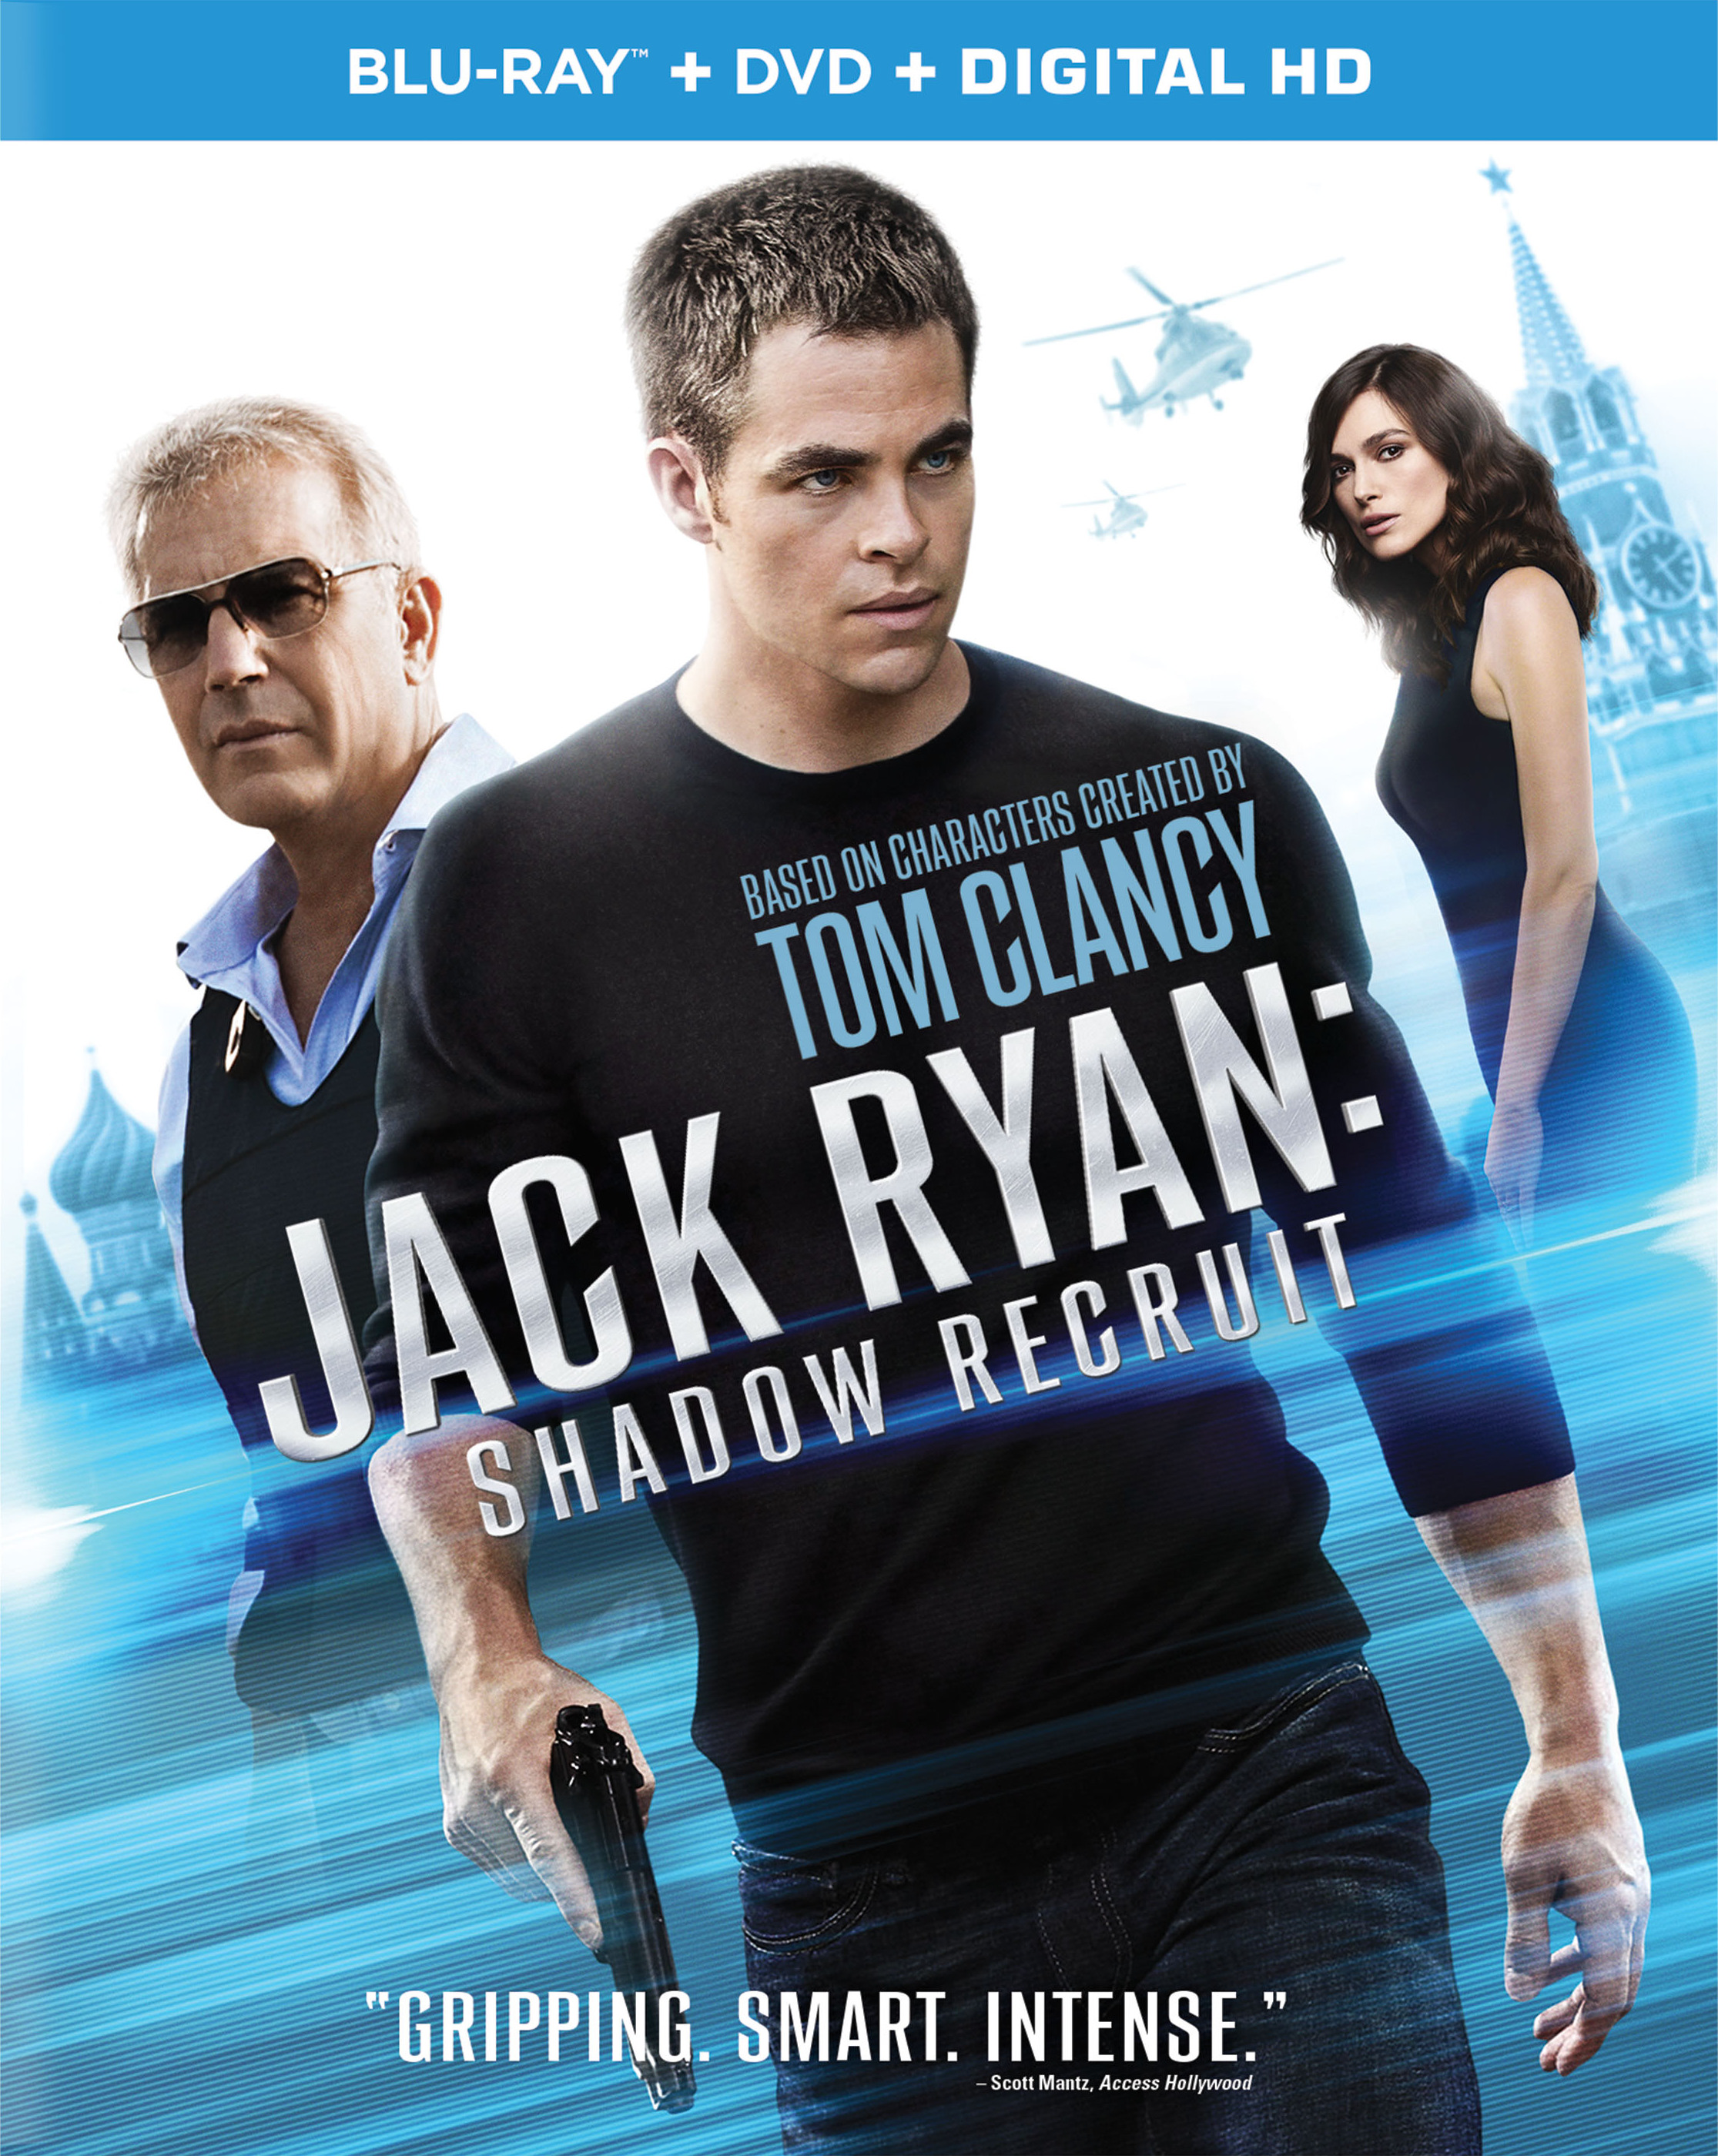 Jack Ryan: Shadow Recruit (2014) poster image